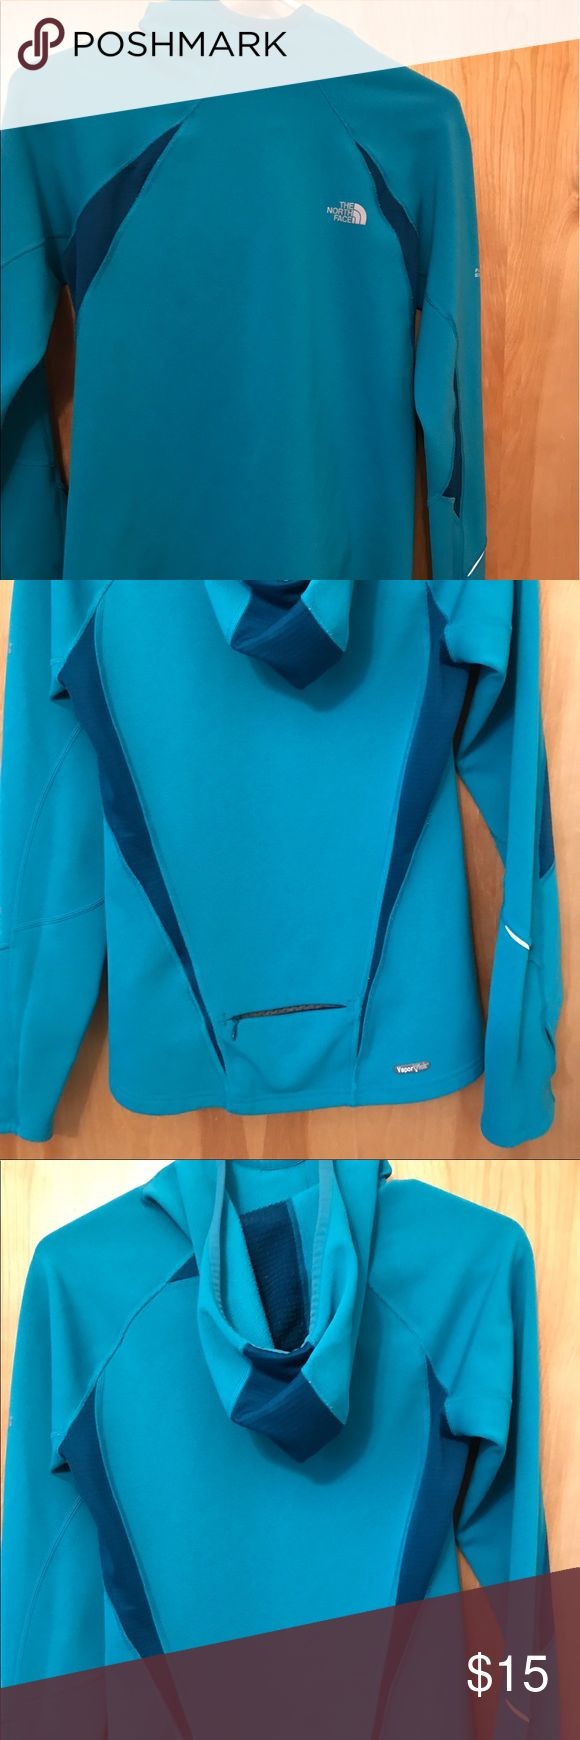 The North Face vapor wick running top Vapor wick, warm. Hardly worn. Slim fit The North Face Tops Sweatshirts & Hoodies